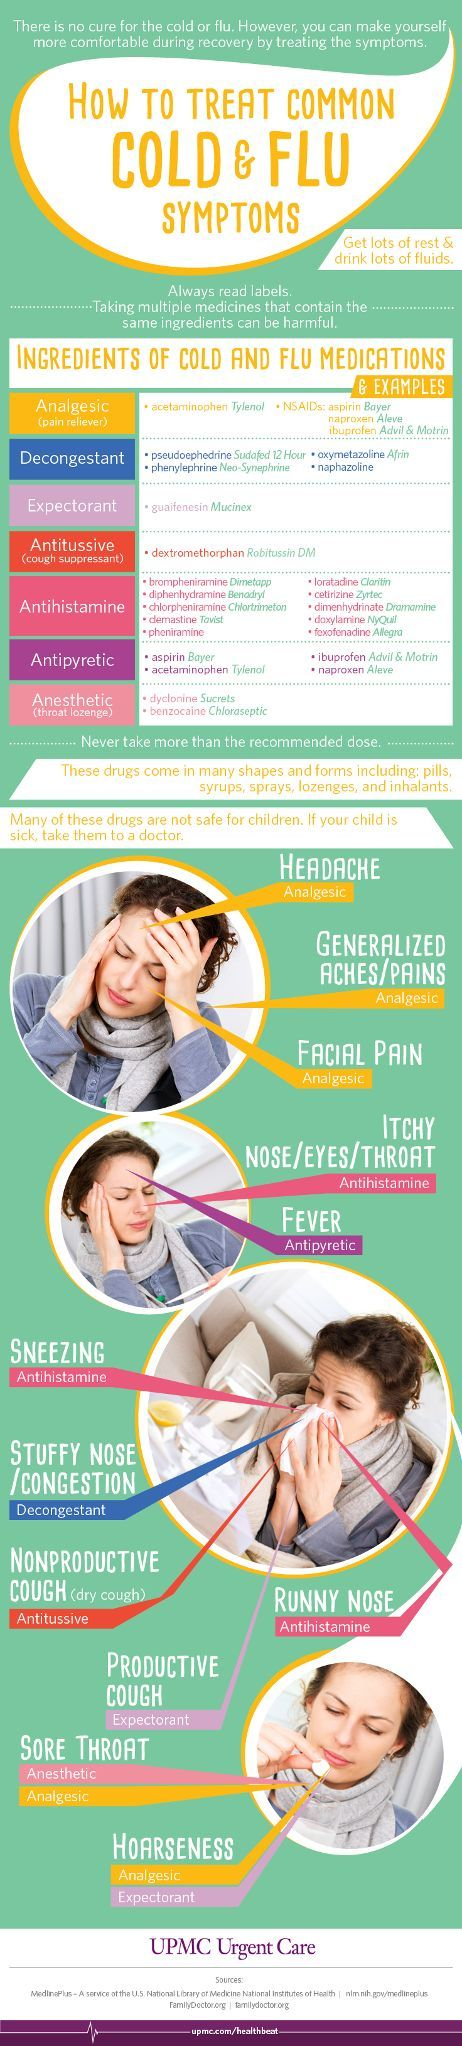 Now that colder weather is settling in, we'll be spending more time couped up indoors next to our sneezy coworkers. That means, despite your best efforts, you might find yourself hit with a nasty cold or even the flu this winter. Discover what cold medicine will work best for your symptoms.